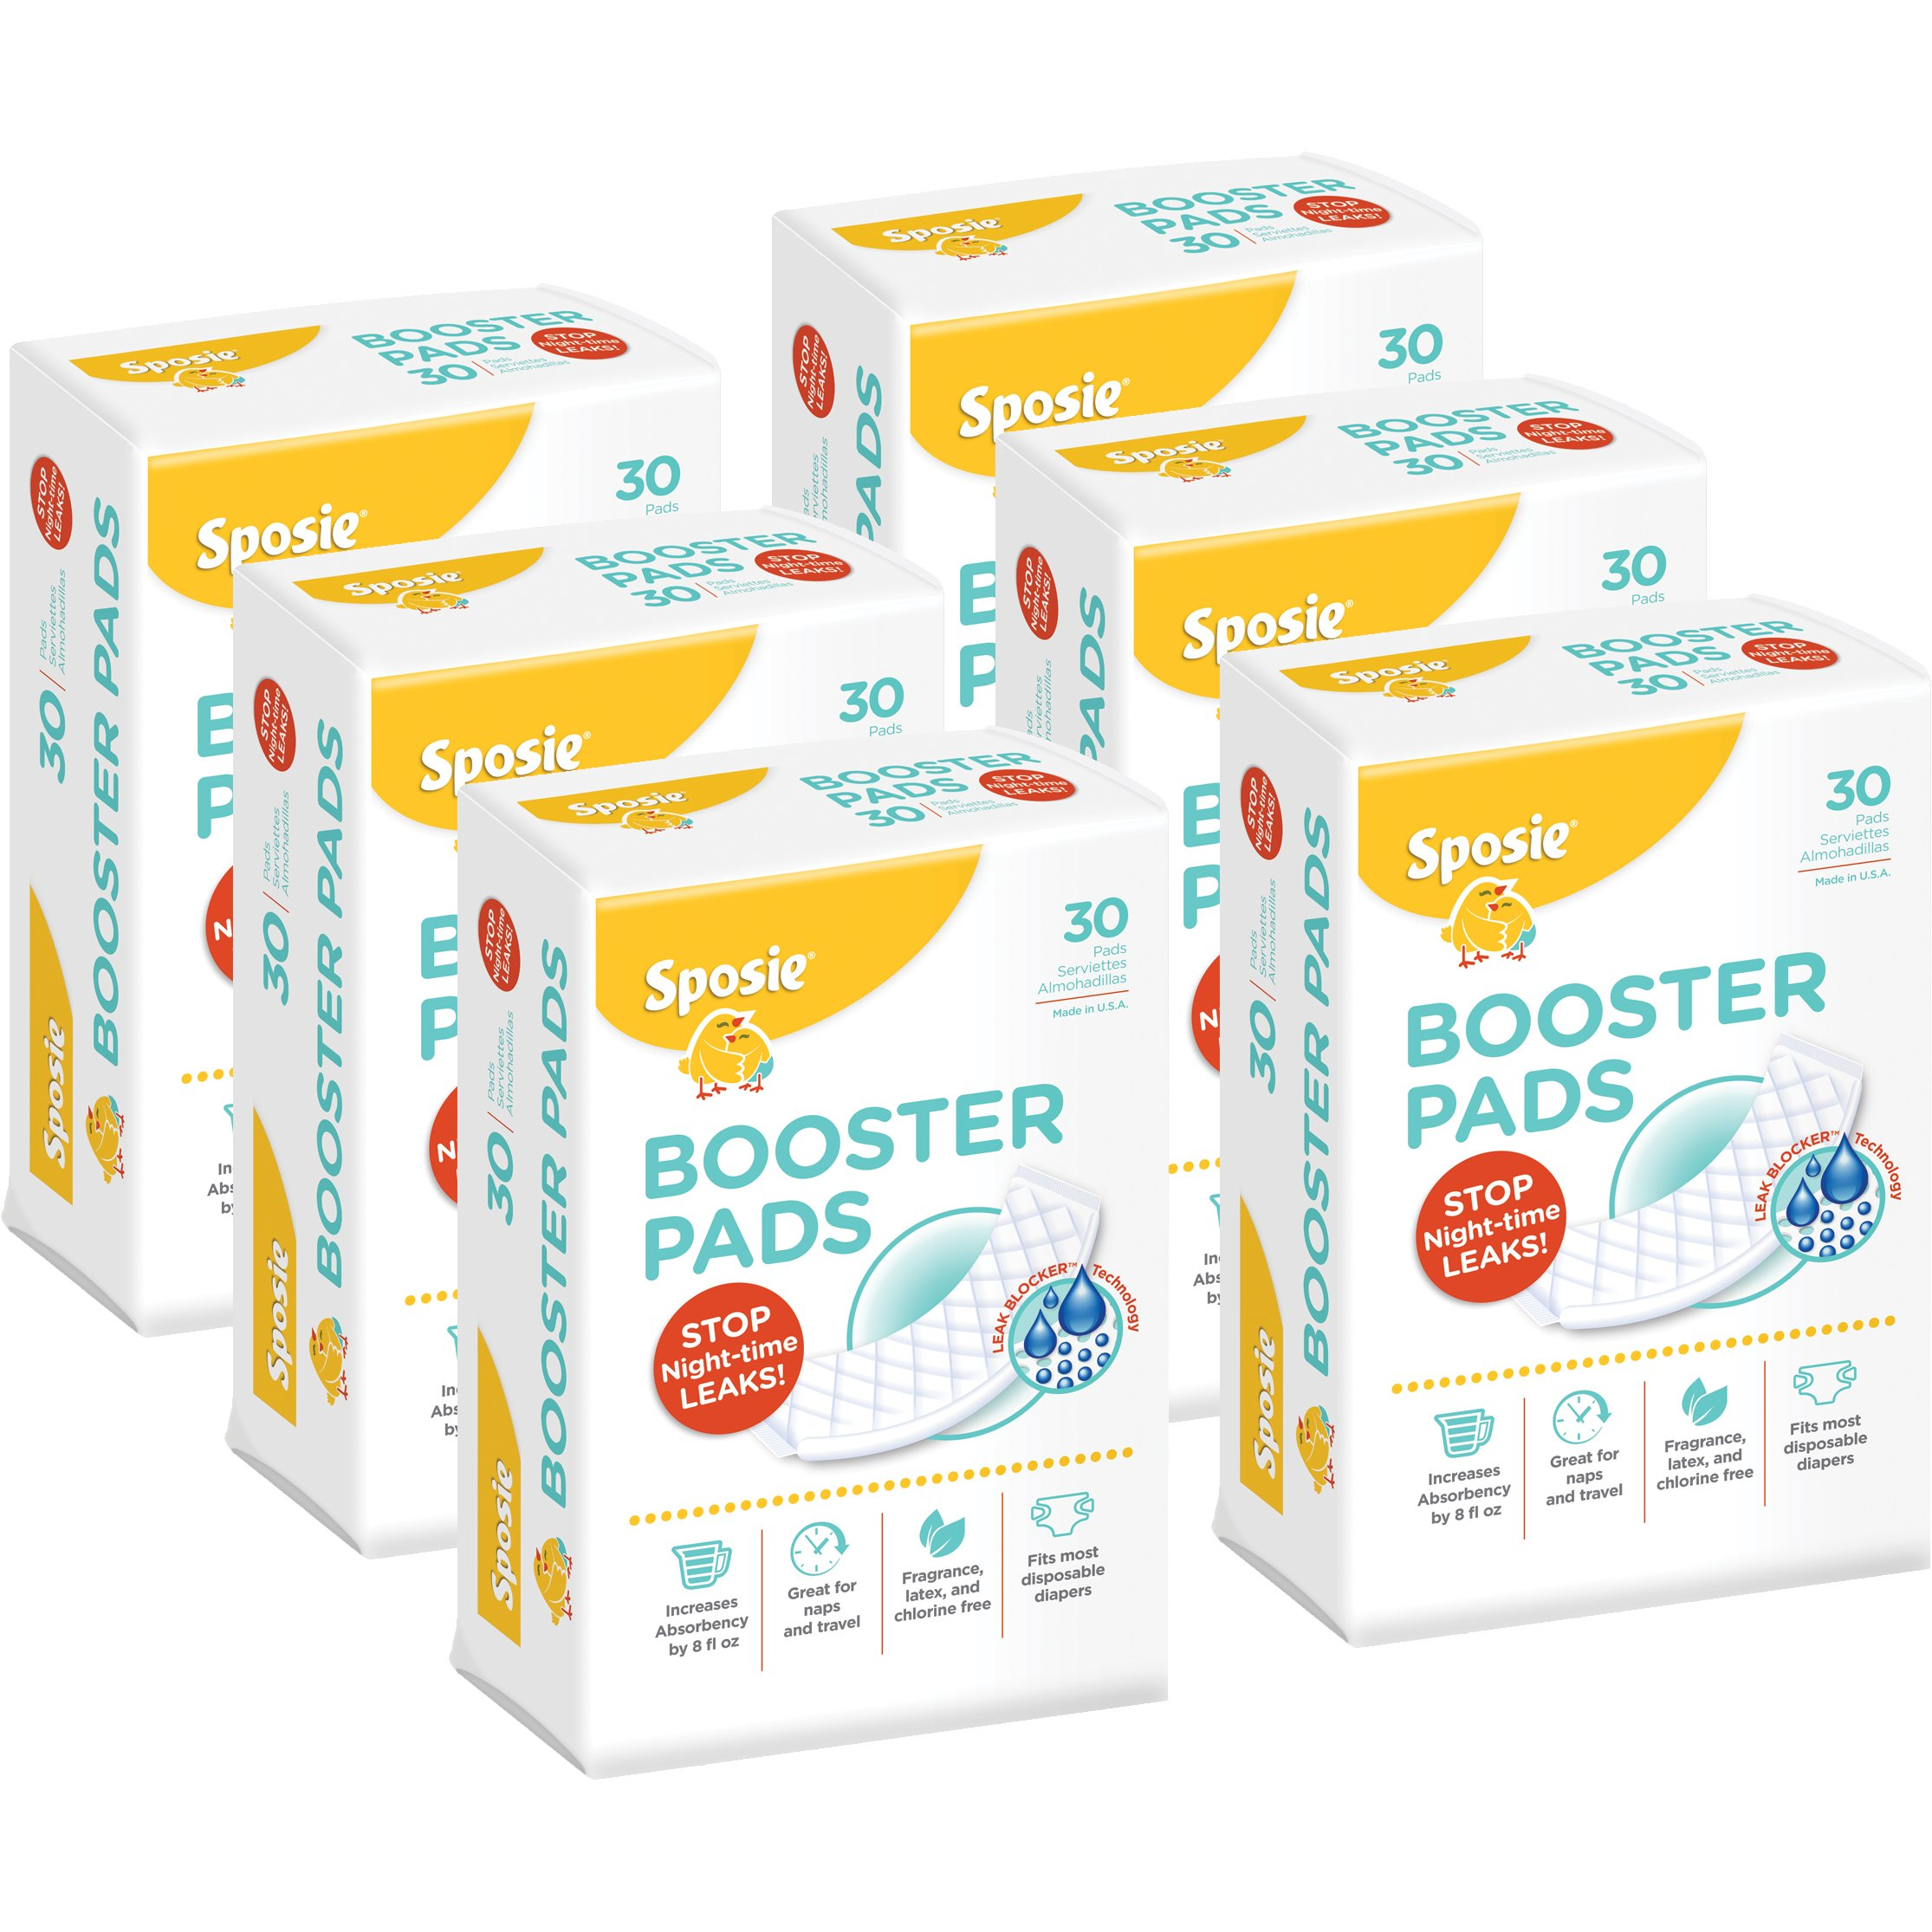 Sposie Booster Pads Diaper Doubler, 180 Count, 6 Packs of 30 Pads (No Adhesive for Easy repositioning) by Select Kids